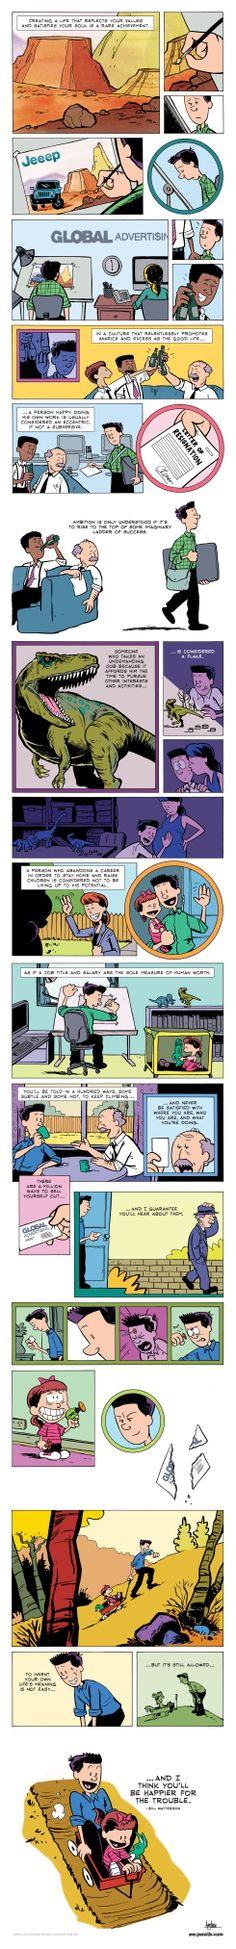 """On his cartoon blog Zen Pencils, Gavin Aung Than turns inspirational quotes into comic strips. For his newest strip, he illustrated a quote from Bill Watterson's 1990 speech at Kenyon College in the style of Calvin and Hobbes, which Than considers """"the greatest comic strip of all time."""""""